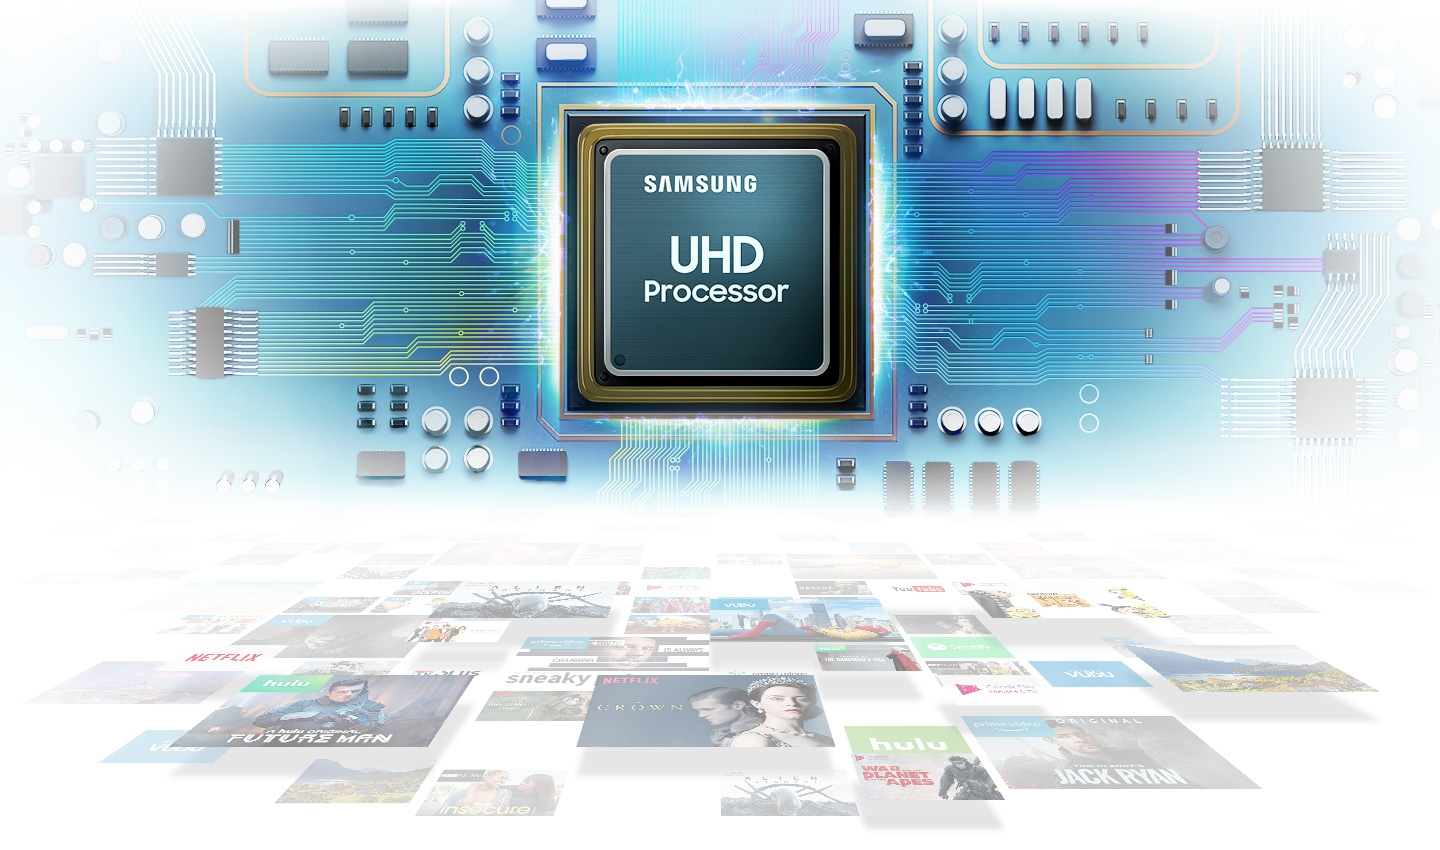 Телевизор SAMSUNG UE50RU7102 (2019г) 4K UHD 3840 x 2160, SMART TV, PQI (Picture Quality Index) 1400, HDR 10+, DVB-T2C - фото UHD Processor,powerful picture quality